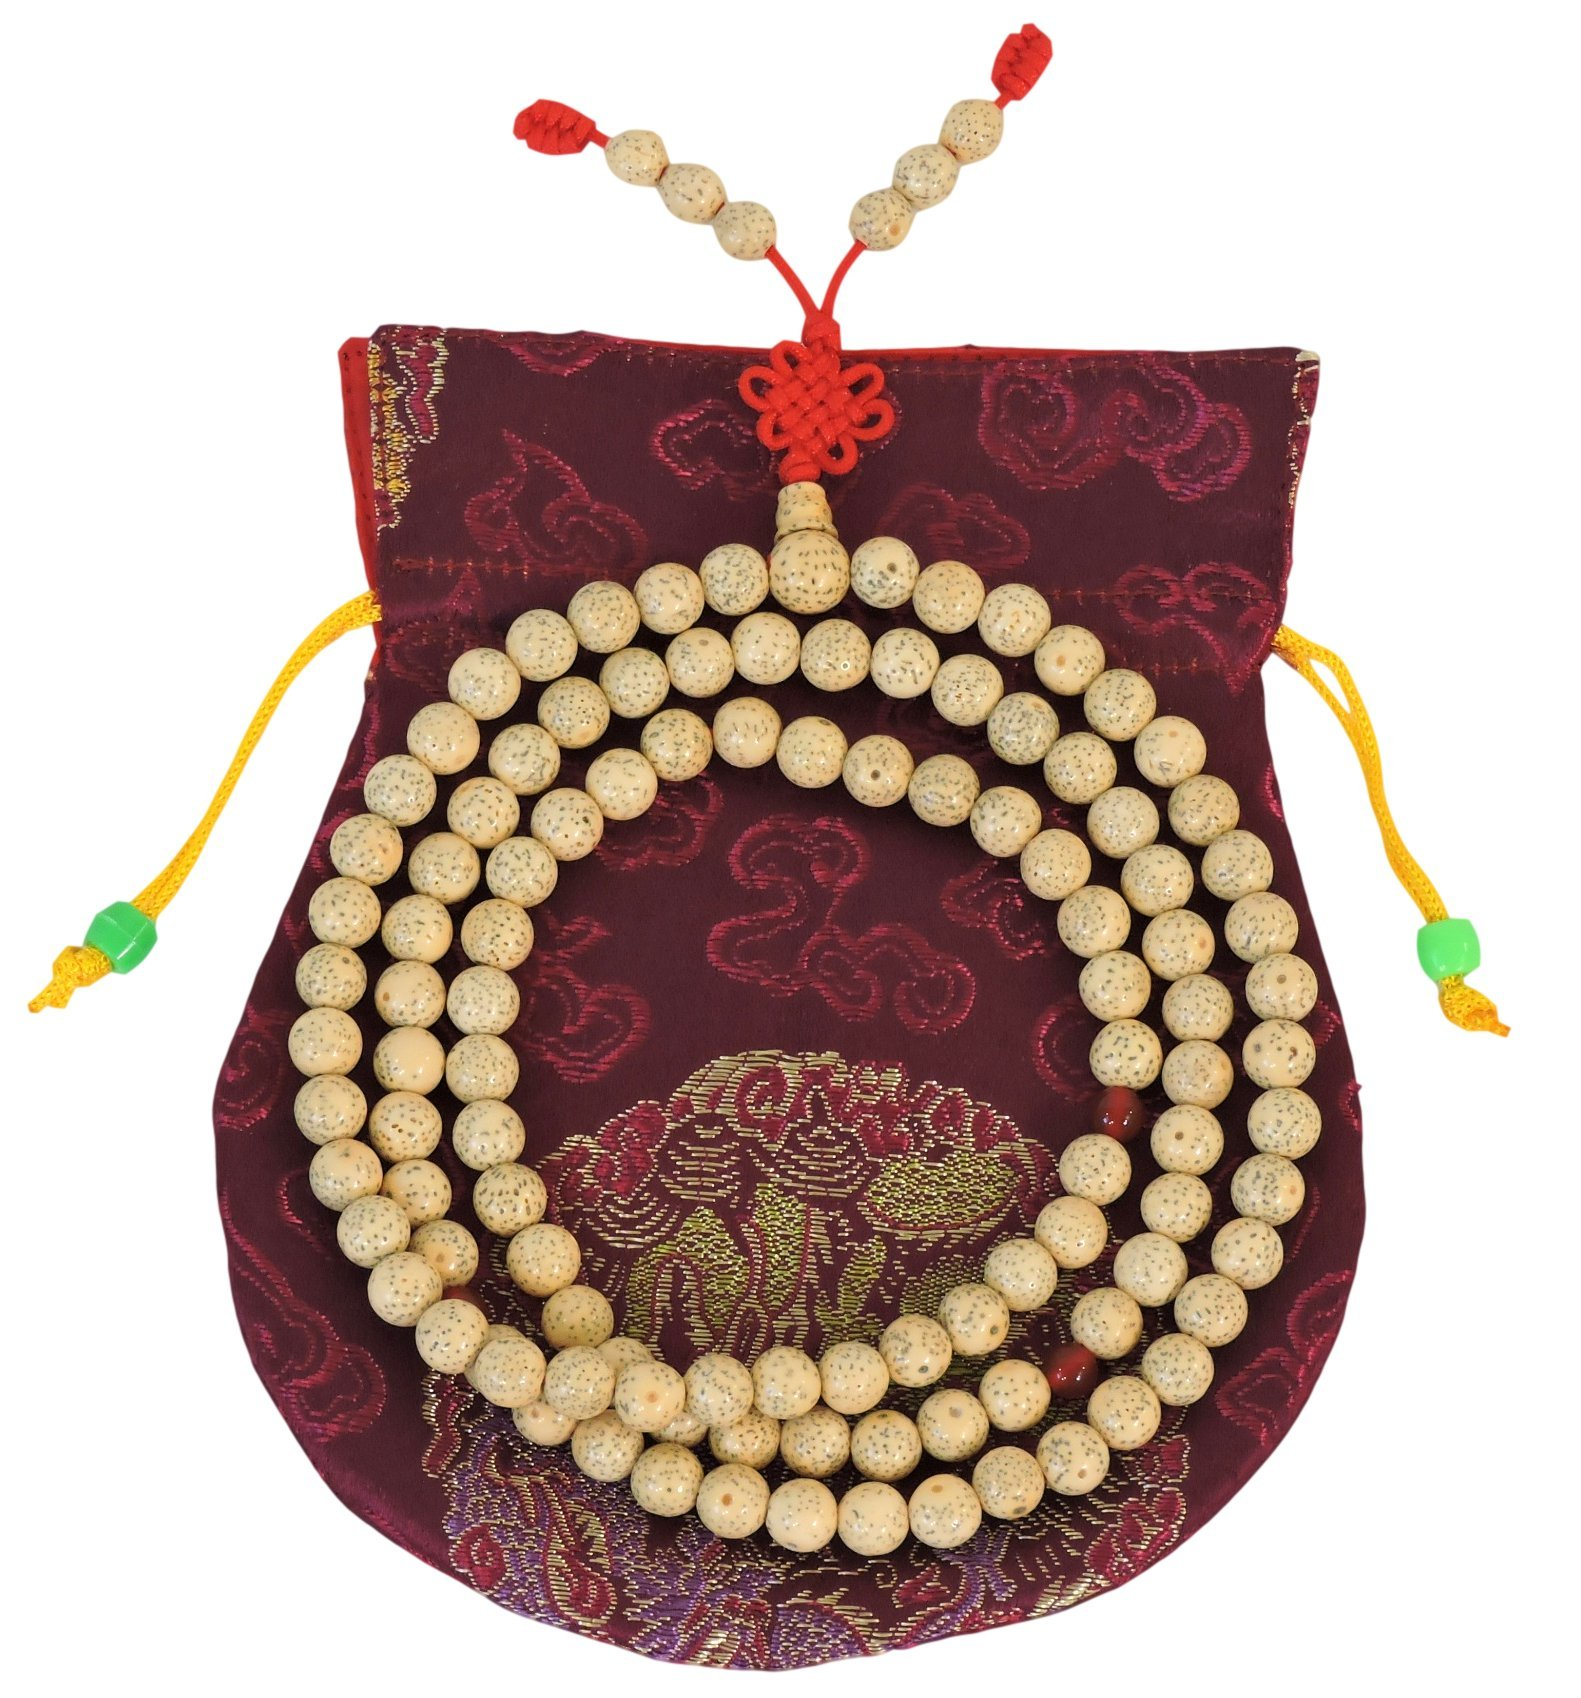 Tibetan Lotus Seed Mala 108 Beads for Meditation GMS-37 by Hands Of Tibet